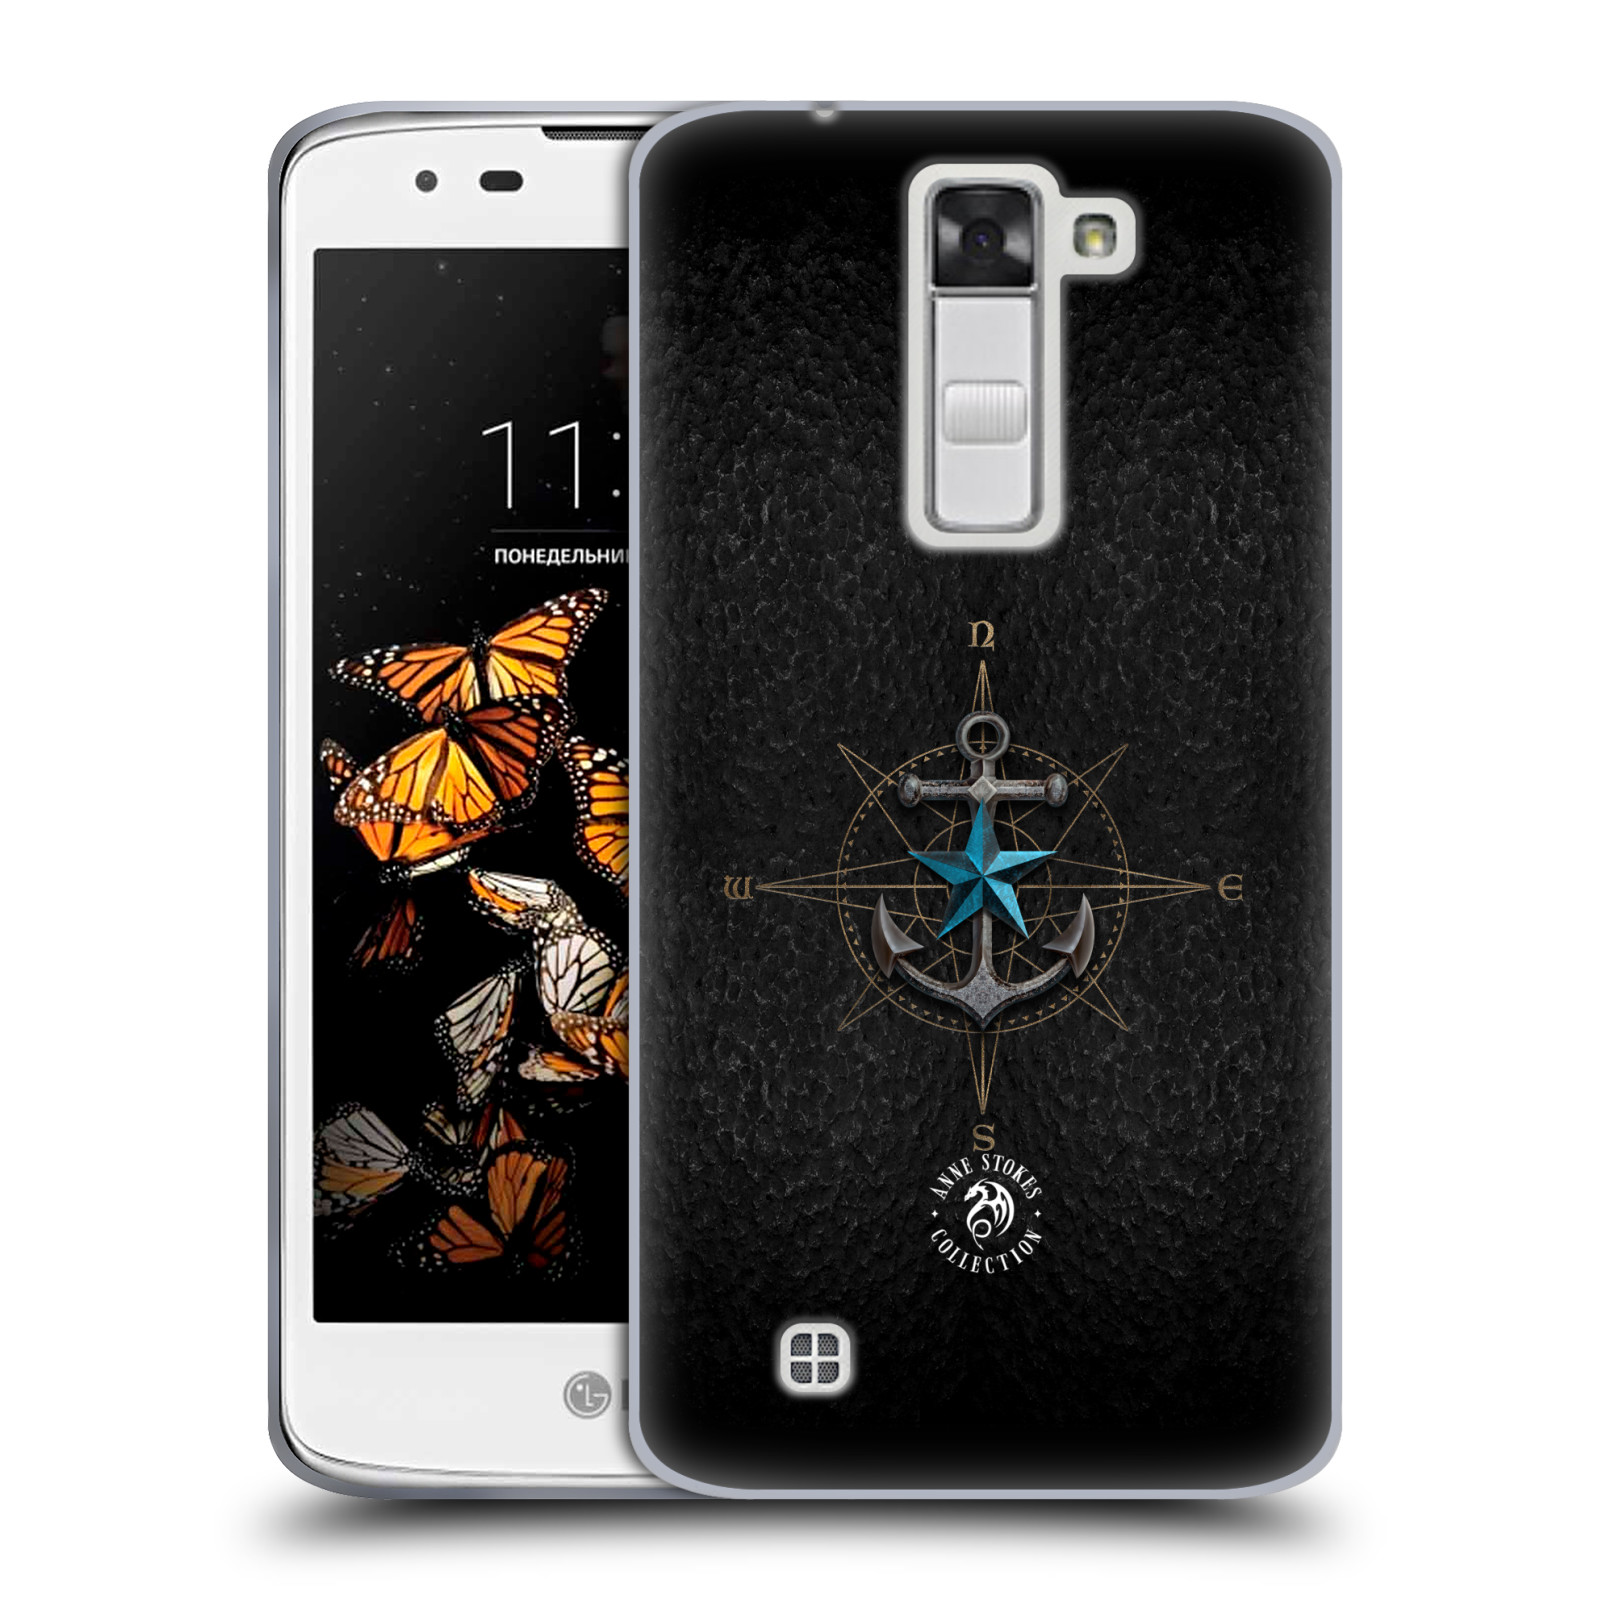 OFFICIAL-ANNE-STOKES-ORNAMENTS-SOFT-GEL-CASE-FOR-LG-PHONES-2